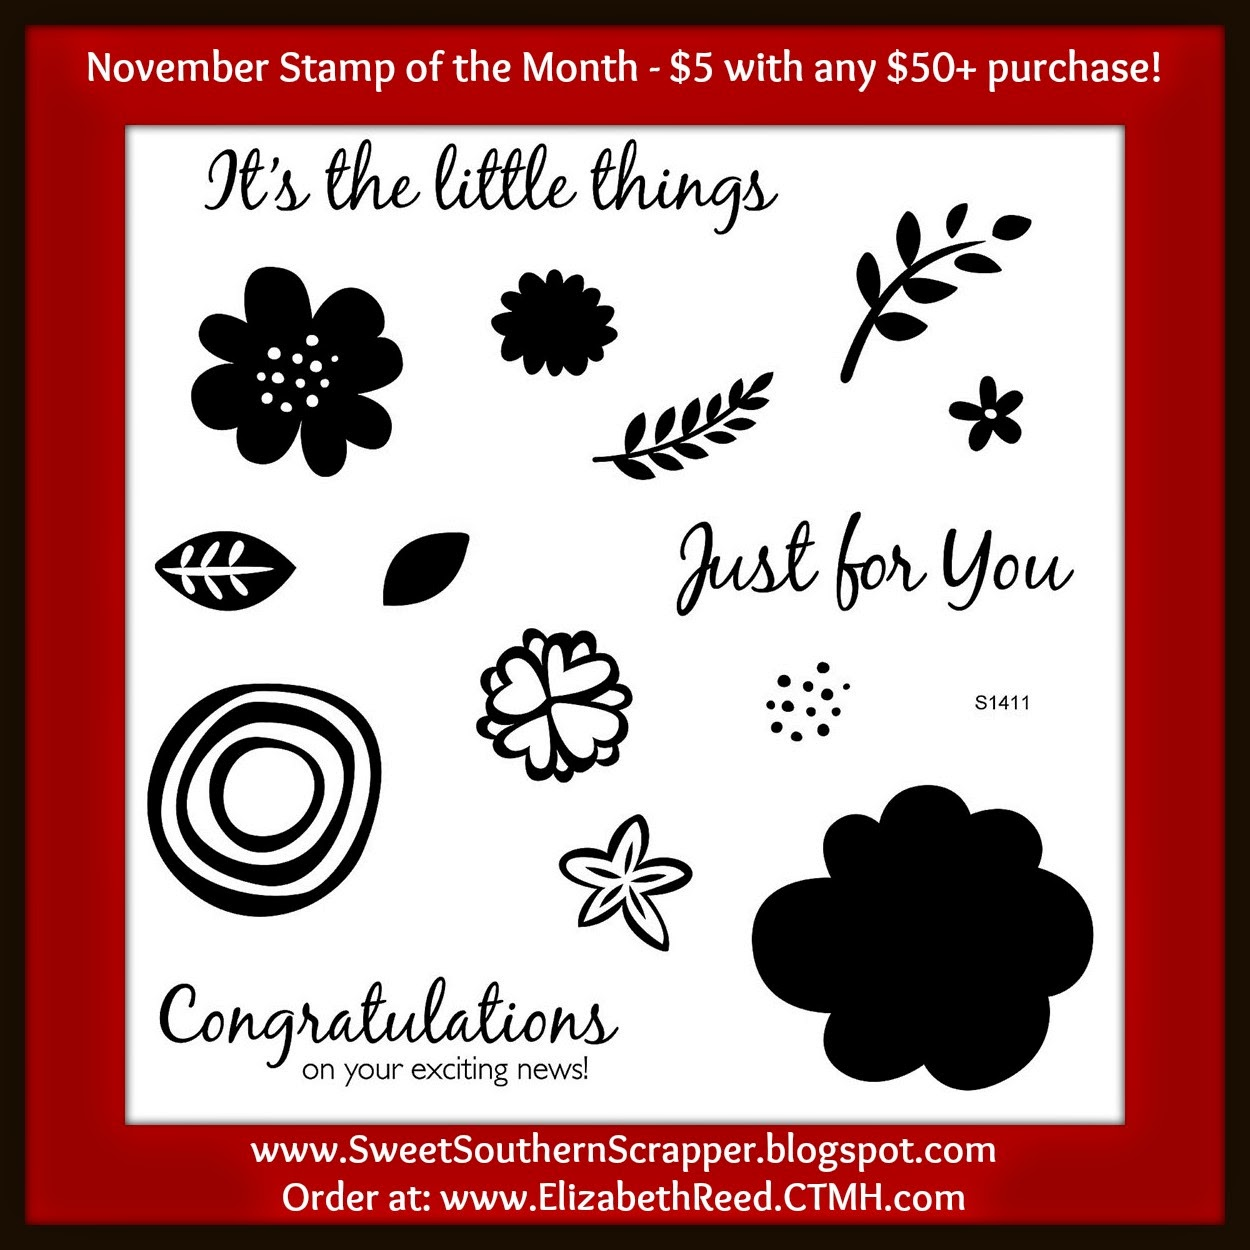 http://elizabethreed.ctmh.com/ctmh/promotions/sotm/2014/1411-its-the-little-things.aspx